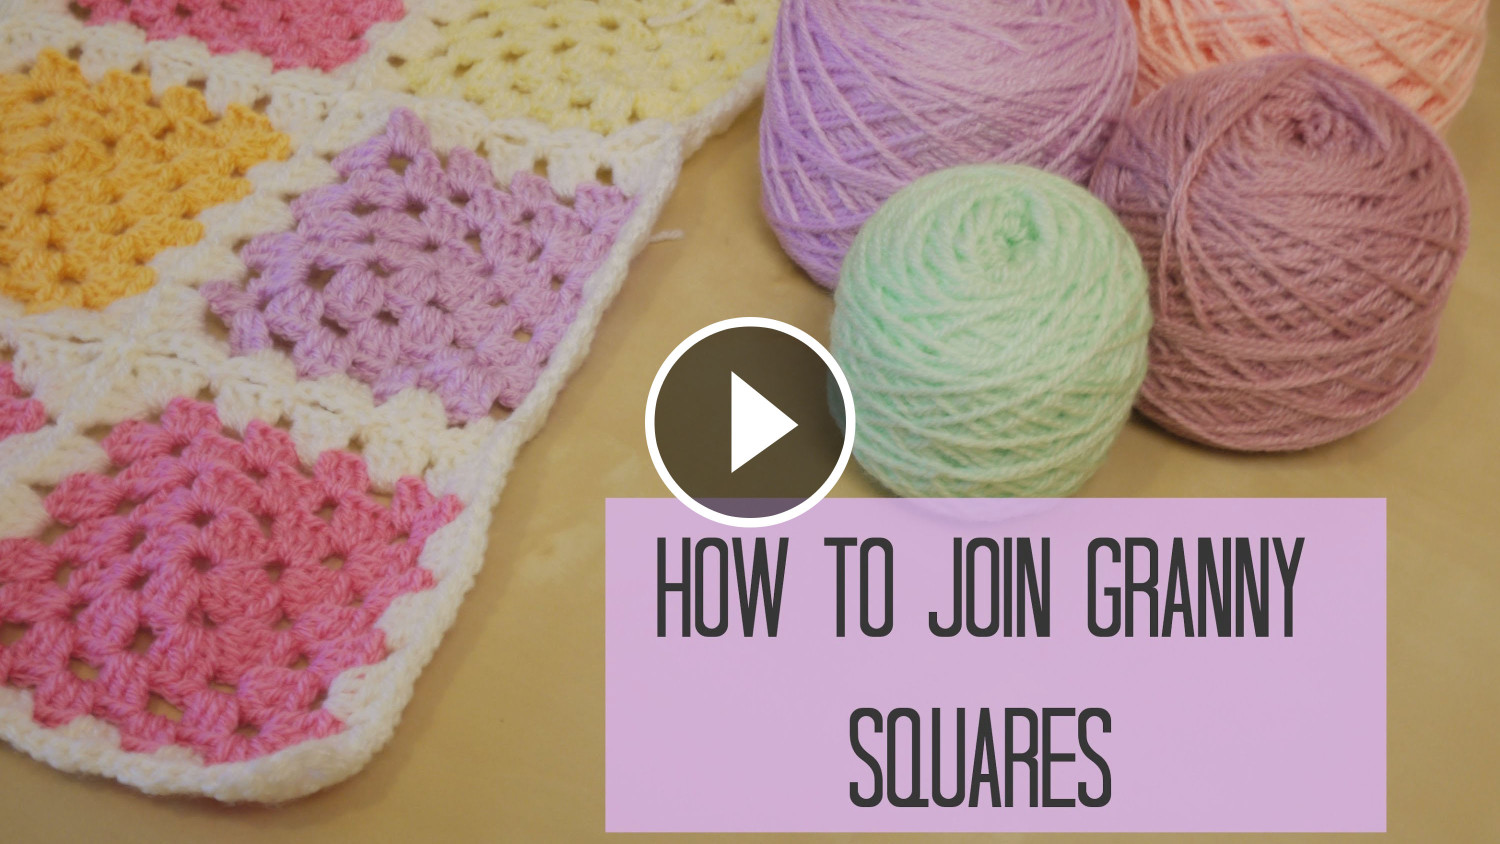 Join Granny Squares Crochet And Knitting Blog by Beja